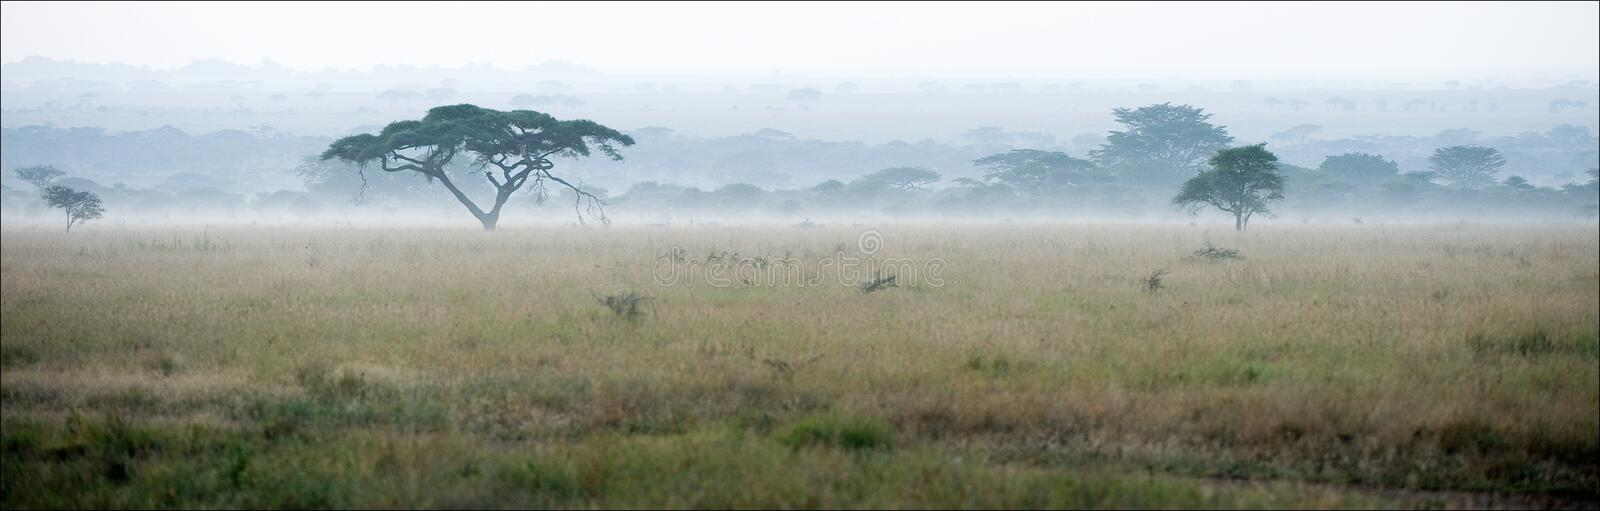 Savanna In A Morning Fog. Stock Photo